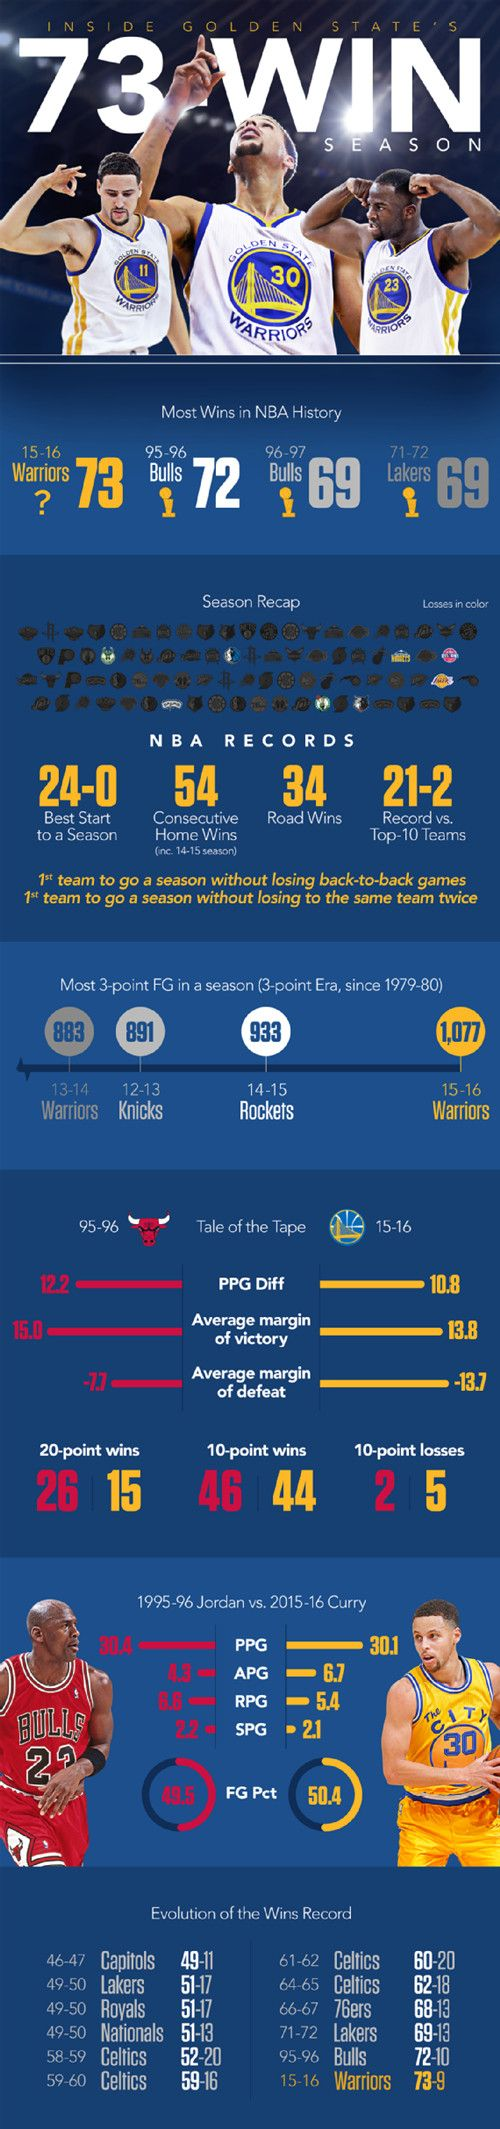 A picture to show the Warriors 73 wins!